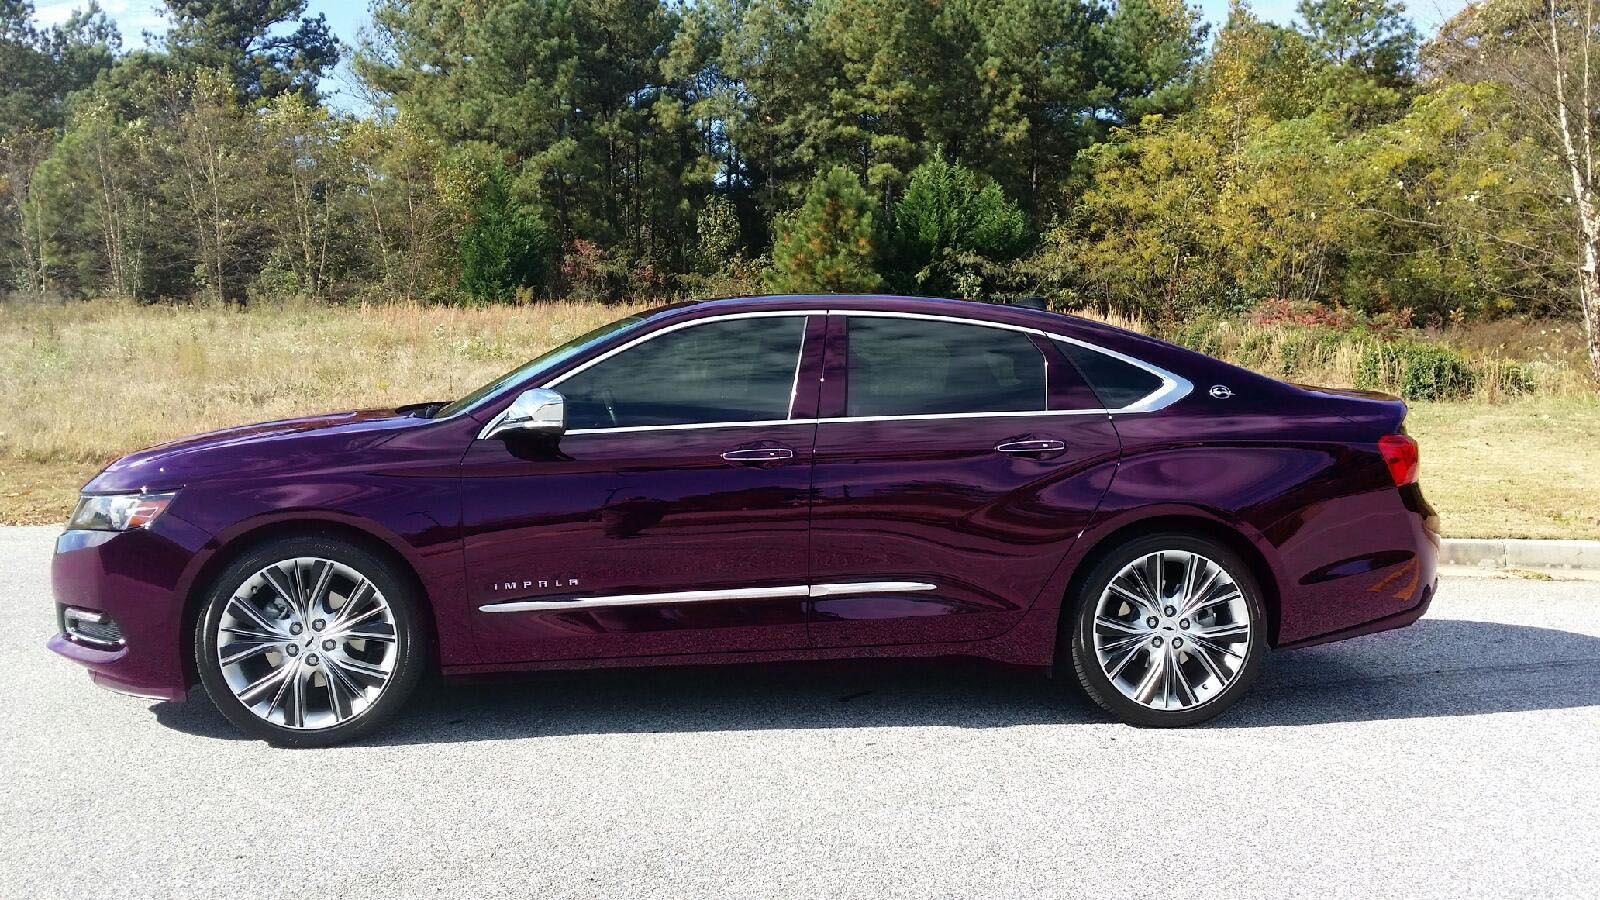 All Types 2014 impala specs : 2014 Chevy Impala, dark purple. I made it the color I want in ...